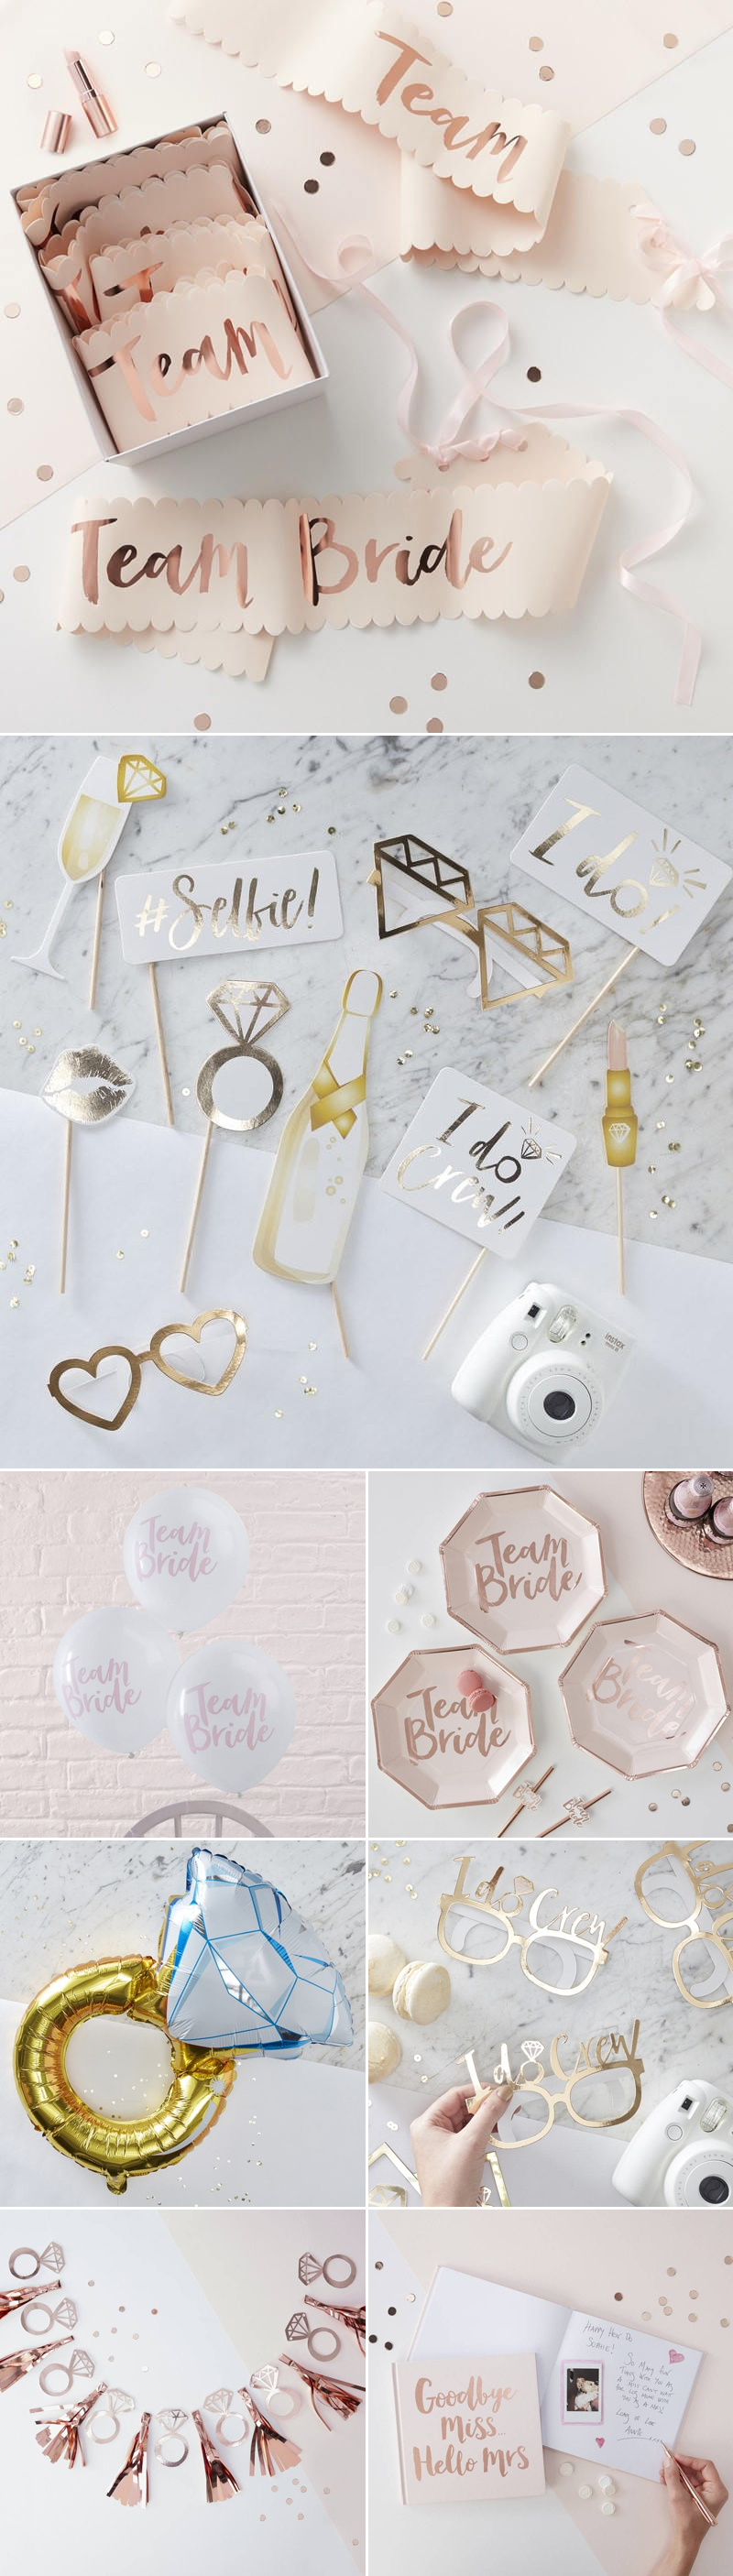 8 Best Places To Find Party Supplies And Props For Your Bachelorette Party Or Bridal Shower Praise Wedding